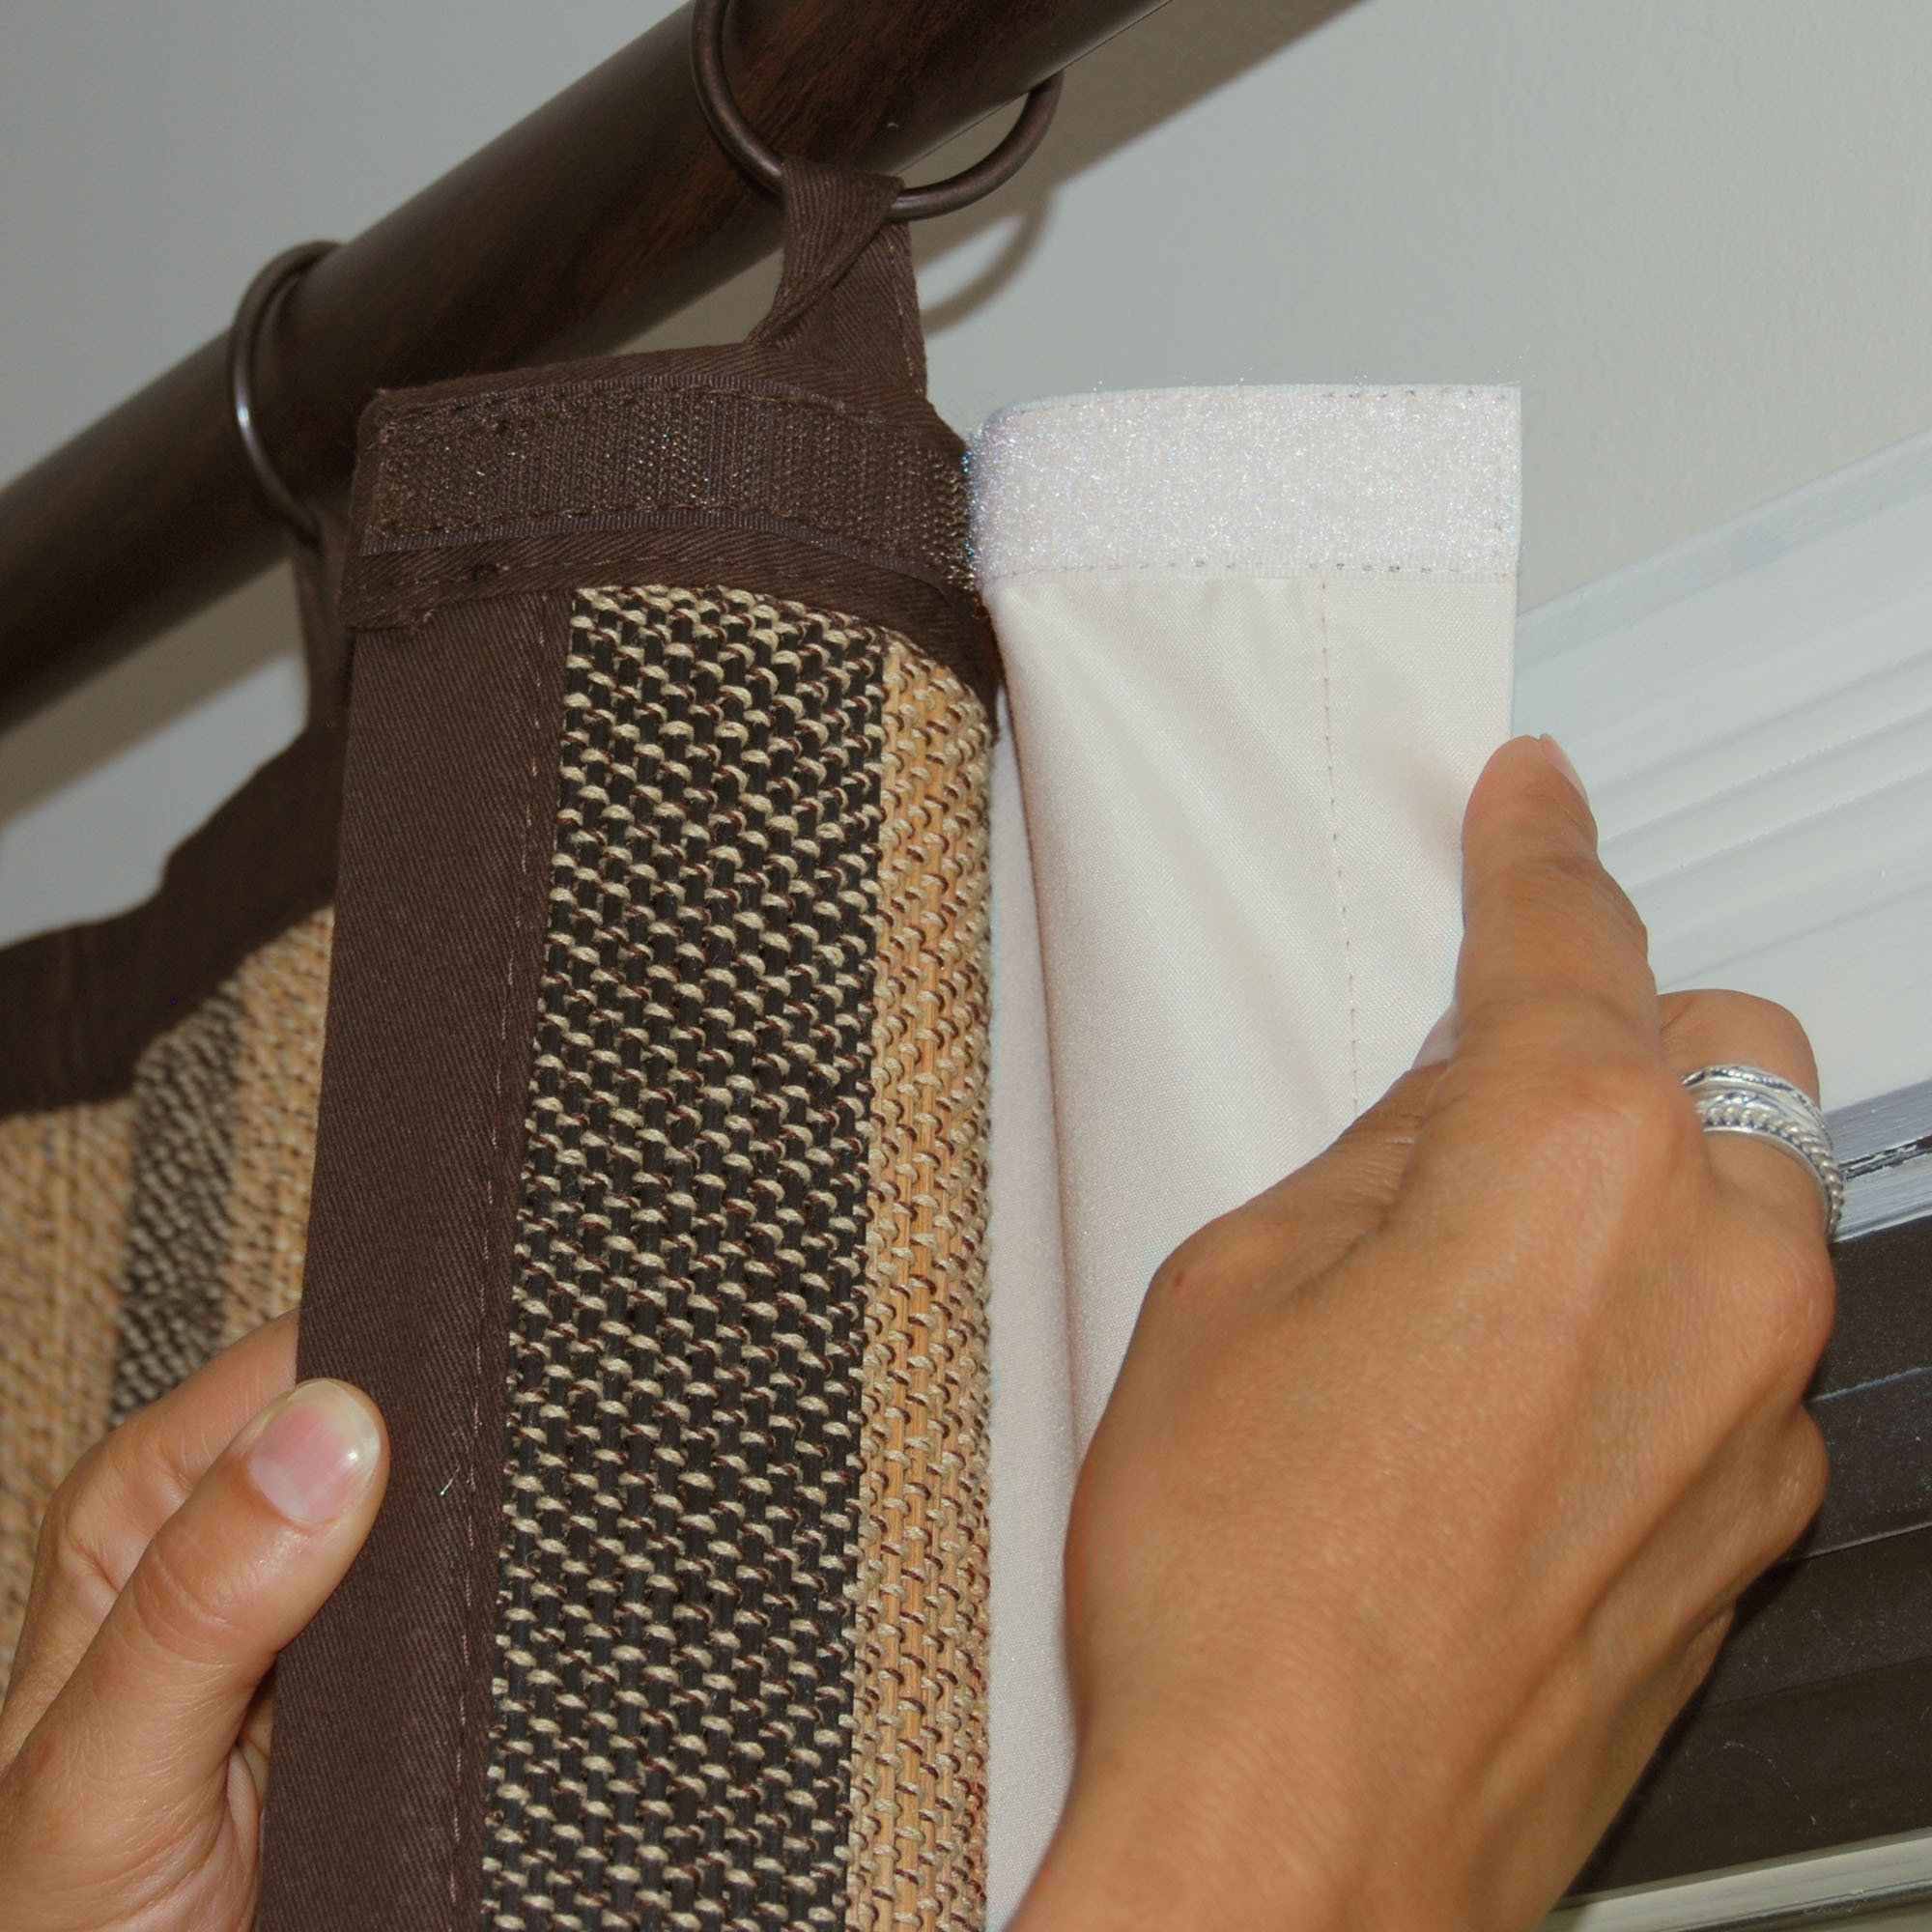 Insulating Blackout Curtain Panel Liner Blackout Curtains With Regard To Curtains With Blackout Lining (Image 7 of 15)